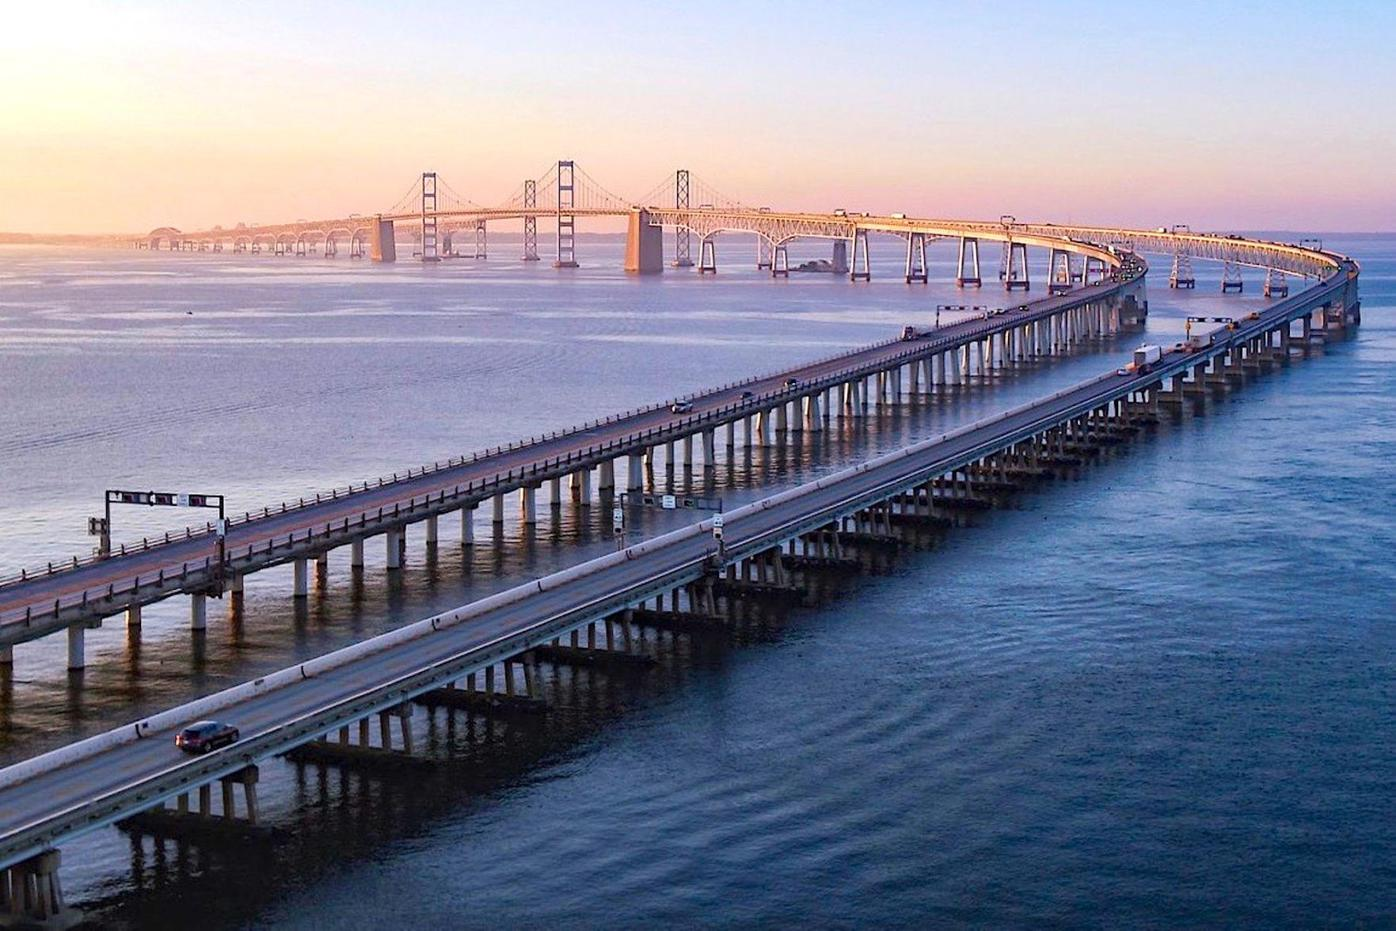 Latest bridge study report favors new span at current crossing